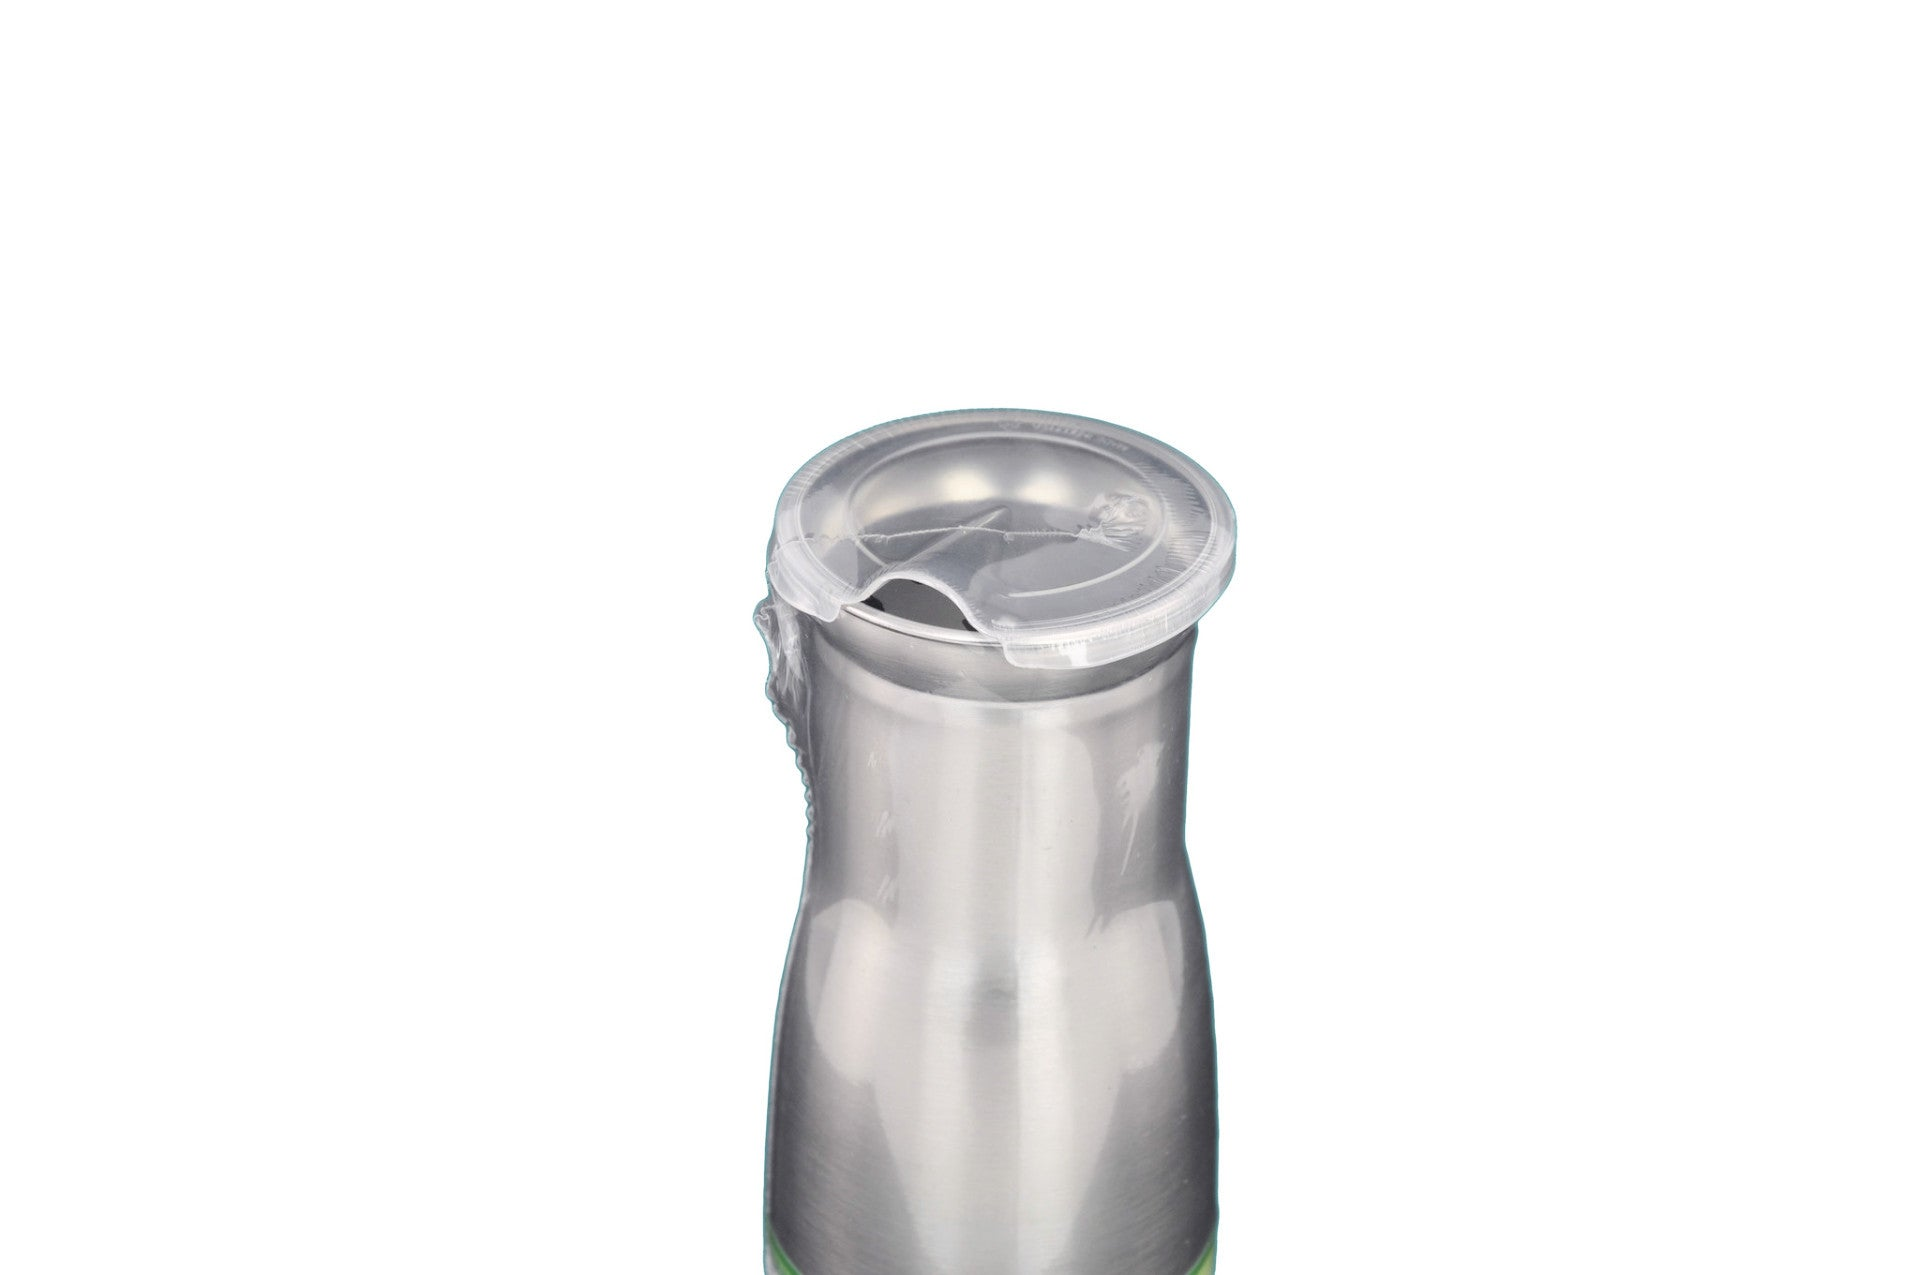 Stainless Steel Water Bottle with Plastic Lid, Tabletop - eKitchenary